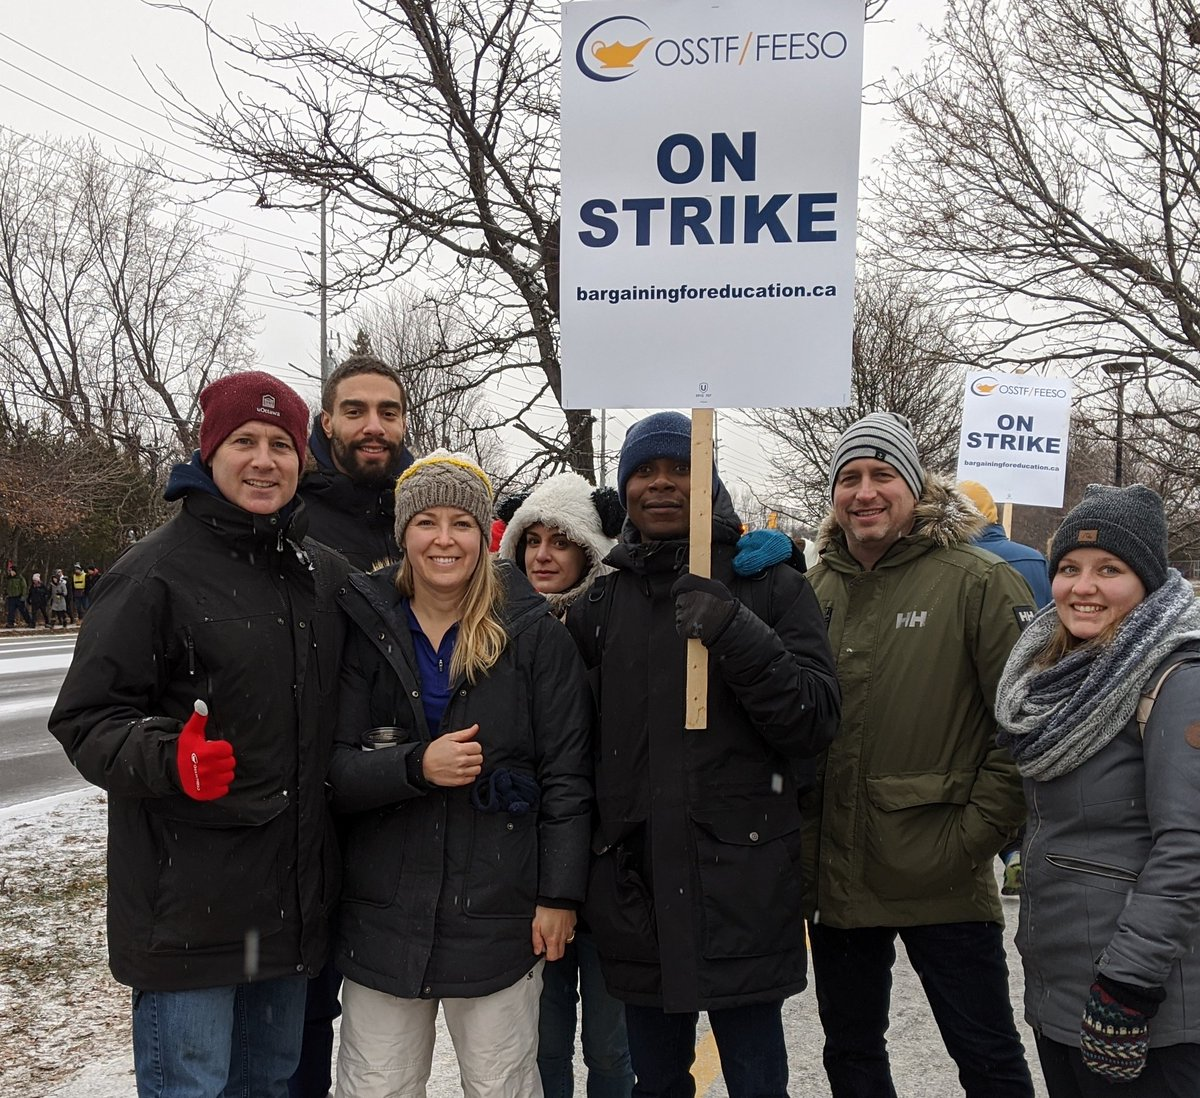 Proud to stand up for public education with my fellow teachers. @Sflecce, do the right thing and stop the cuts. #OSSTF #onted #onpoli #NoCutsToEducation #FairDealNow